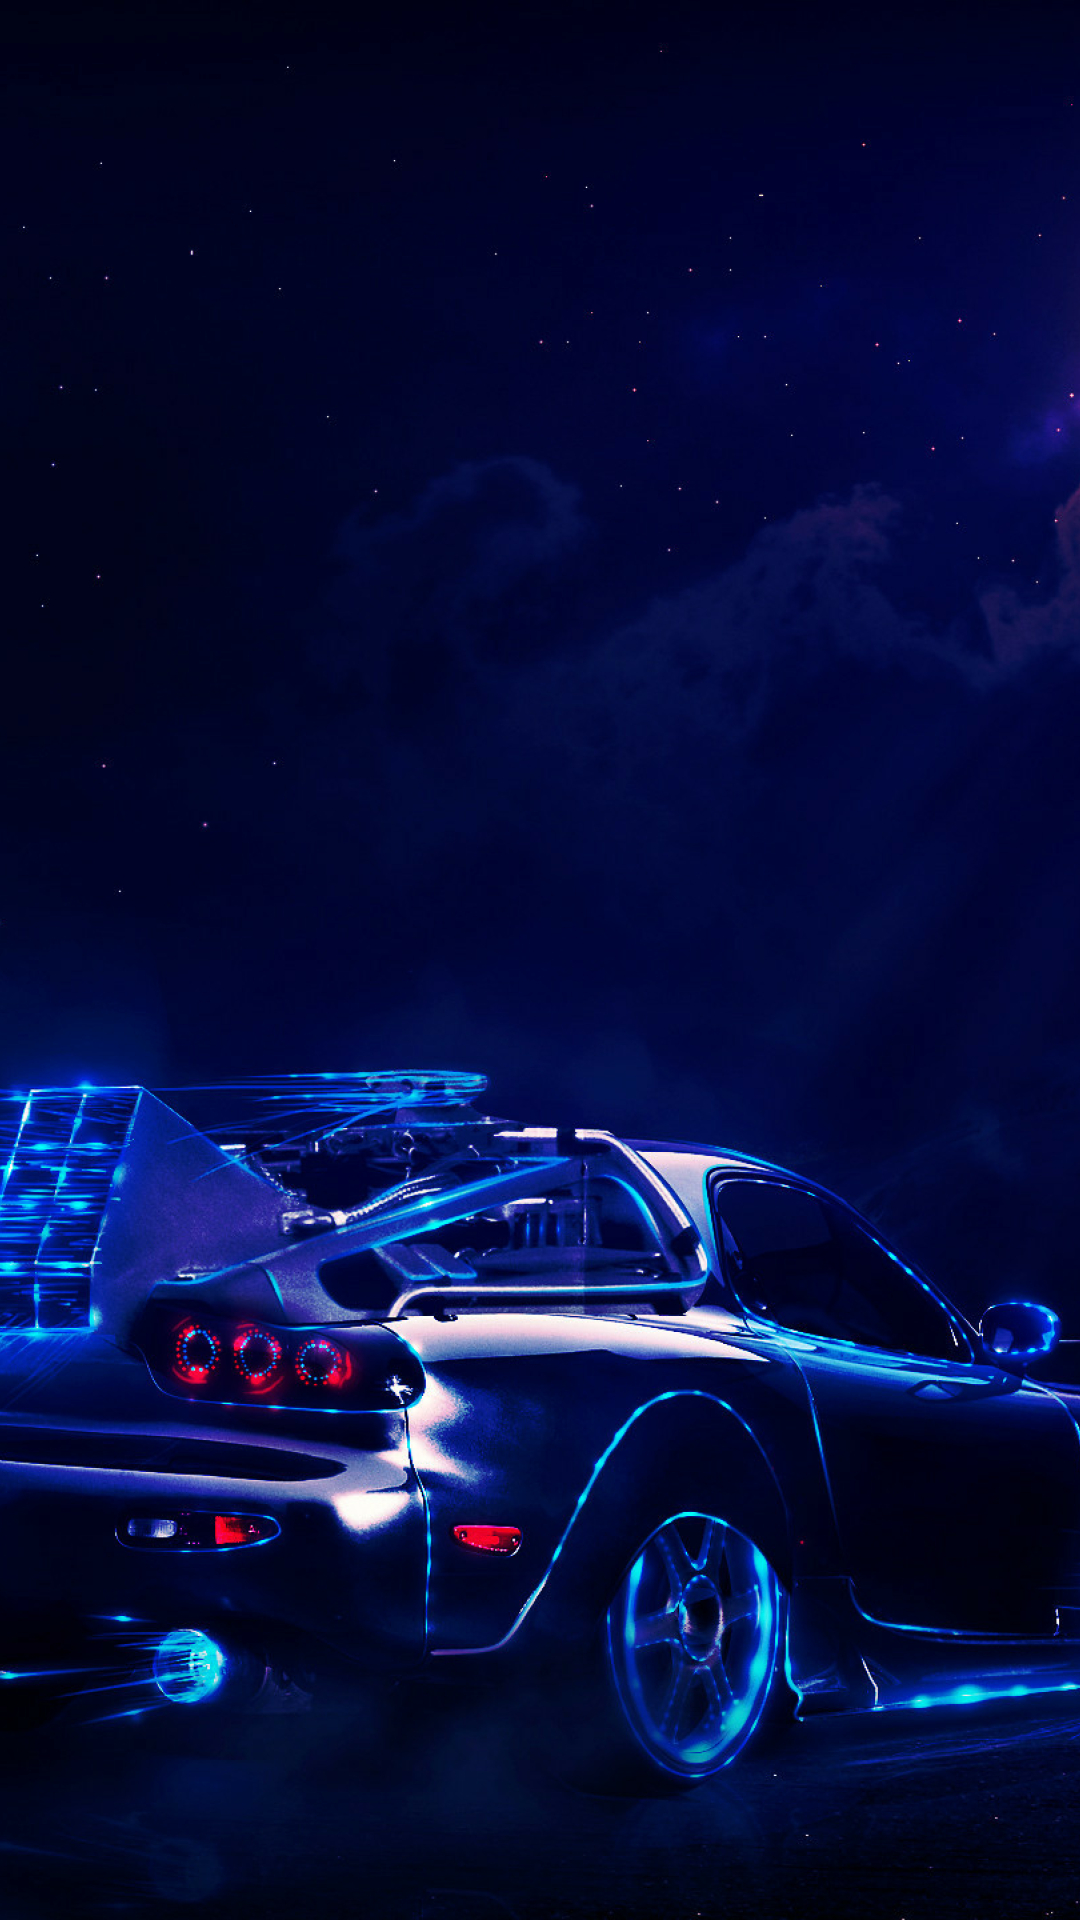 Neon Car Driving To The Moon Wolf, Full HD 2K Wallpaper